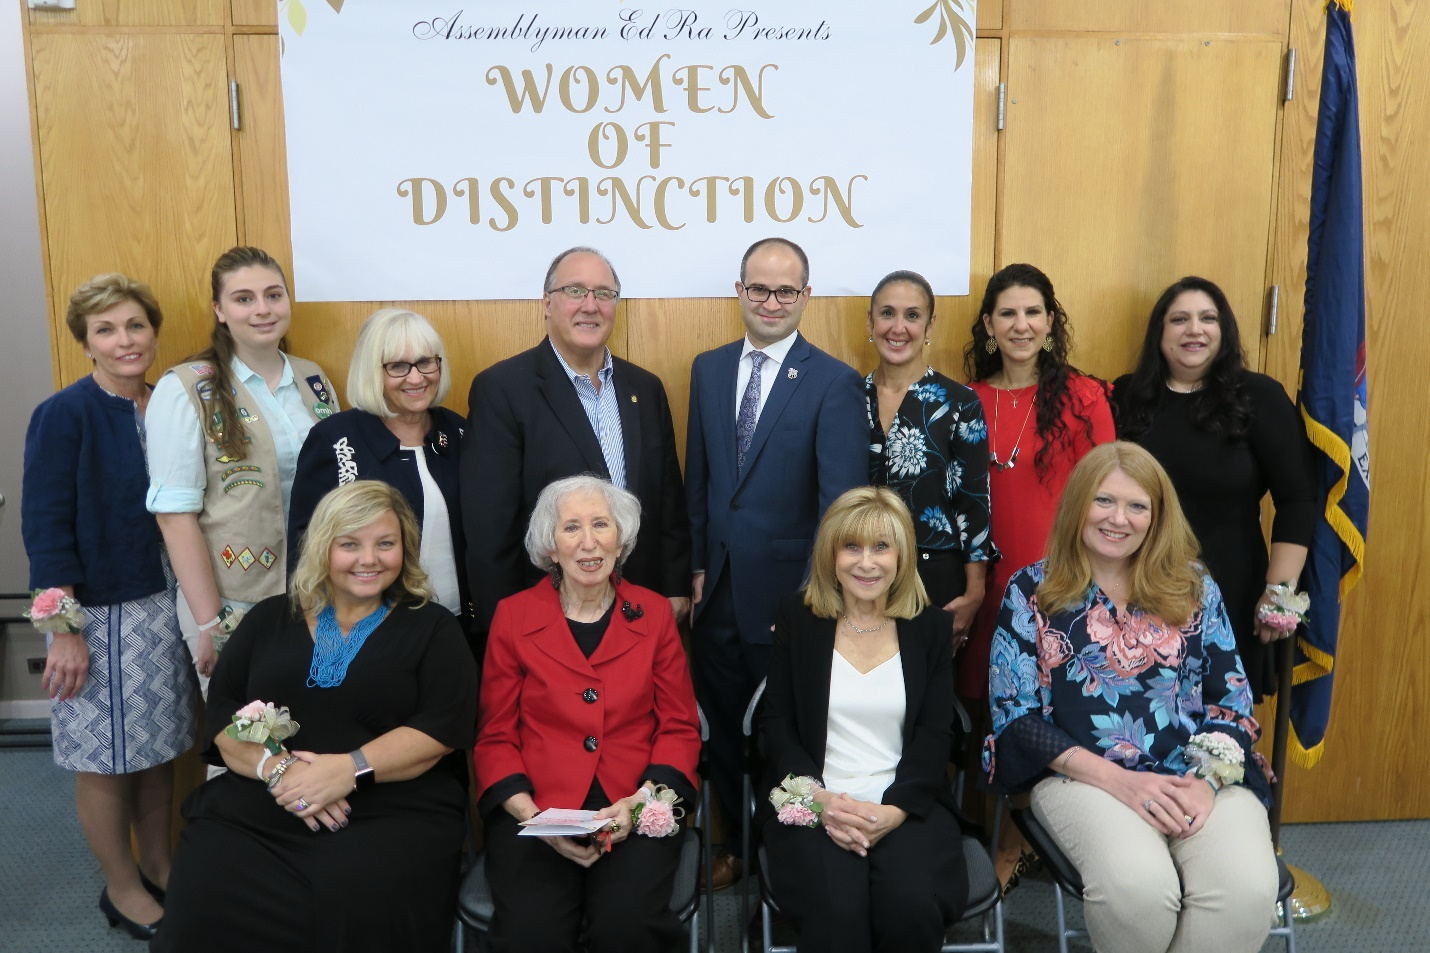 Assemblyman Ed Ra (R-Franklin Square) honored eight local women with his 2018 Women of Distinction Award on Saturday, October 6 at the Westbury Memorial Public Library. (From left to right, back row)